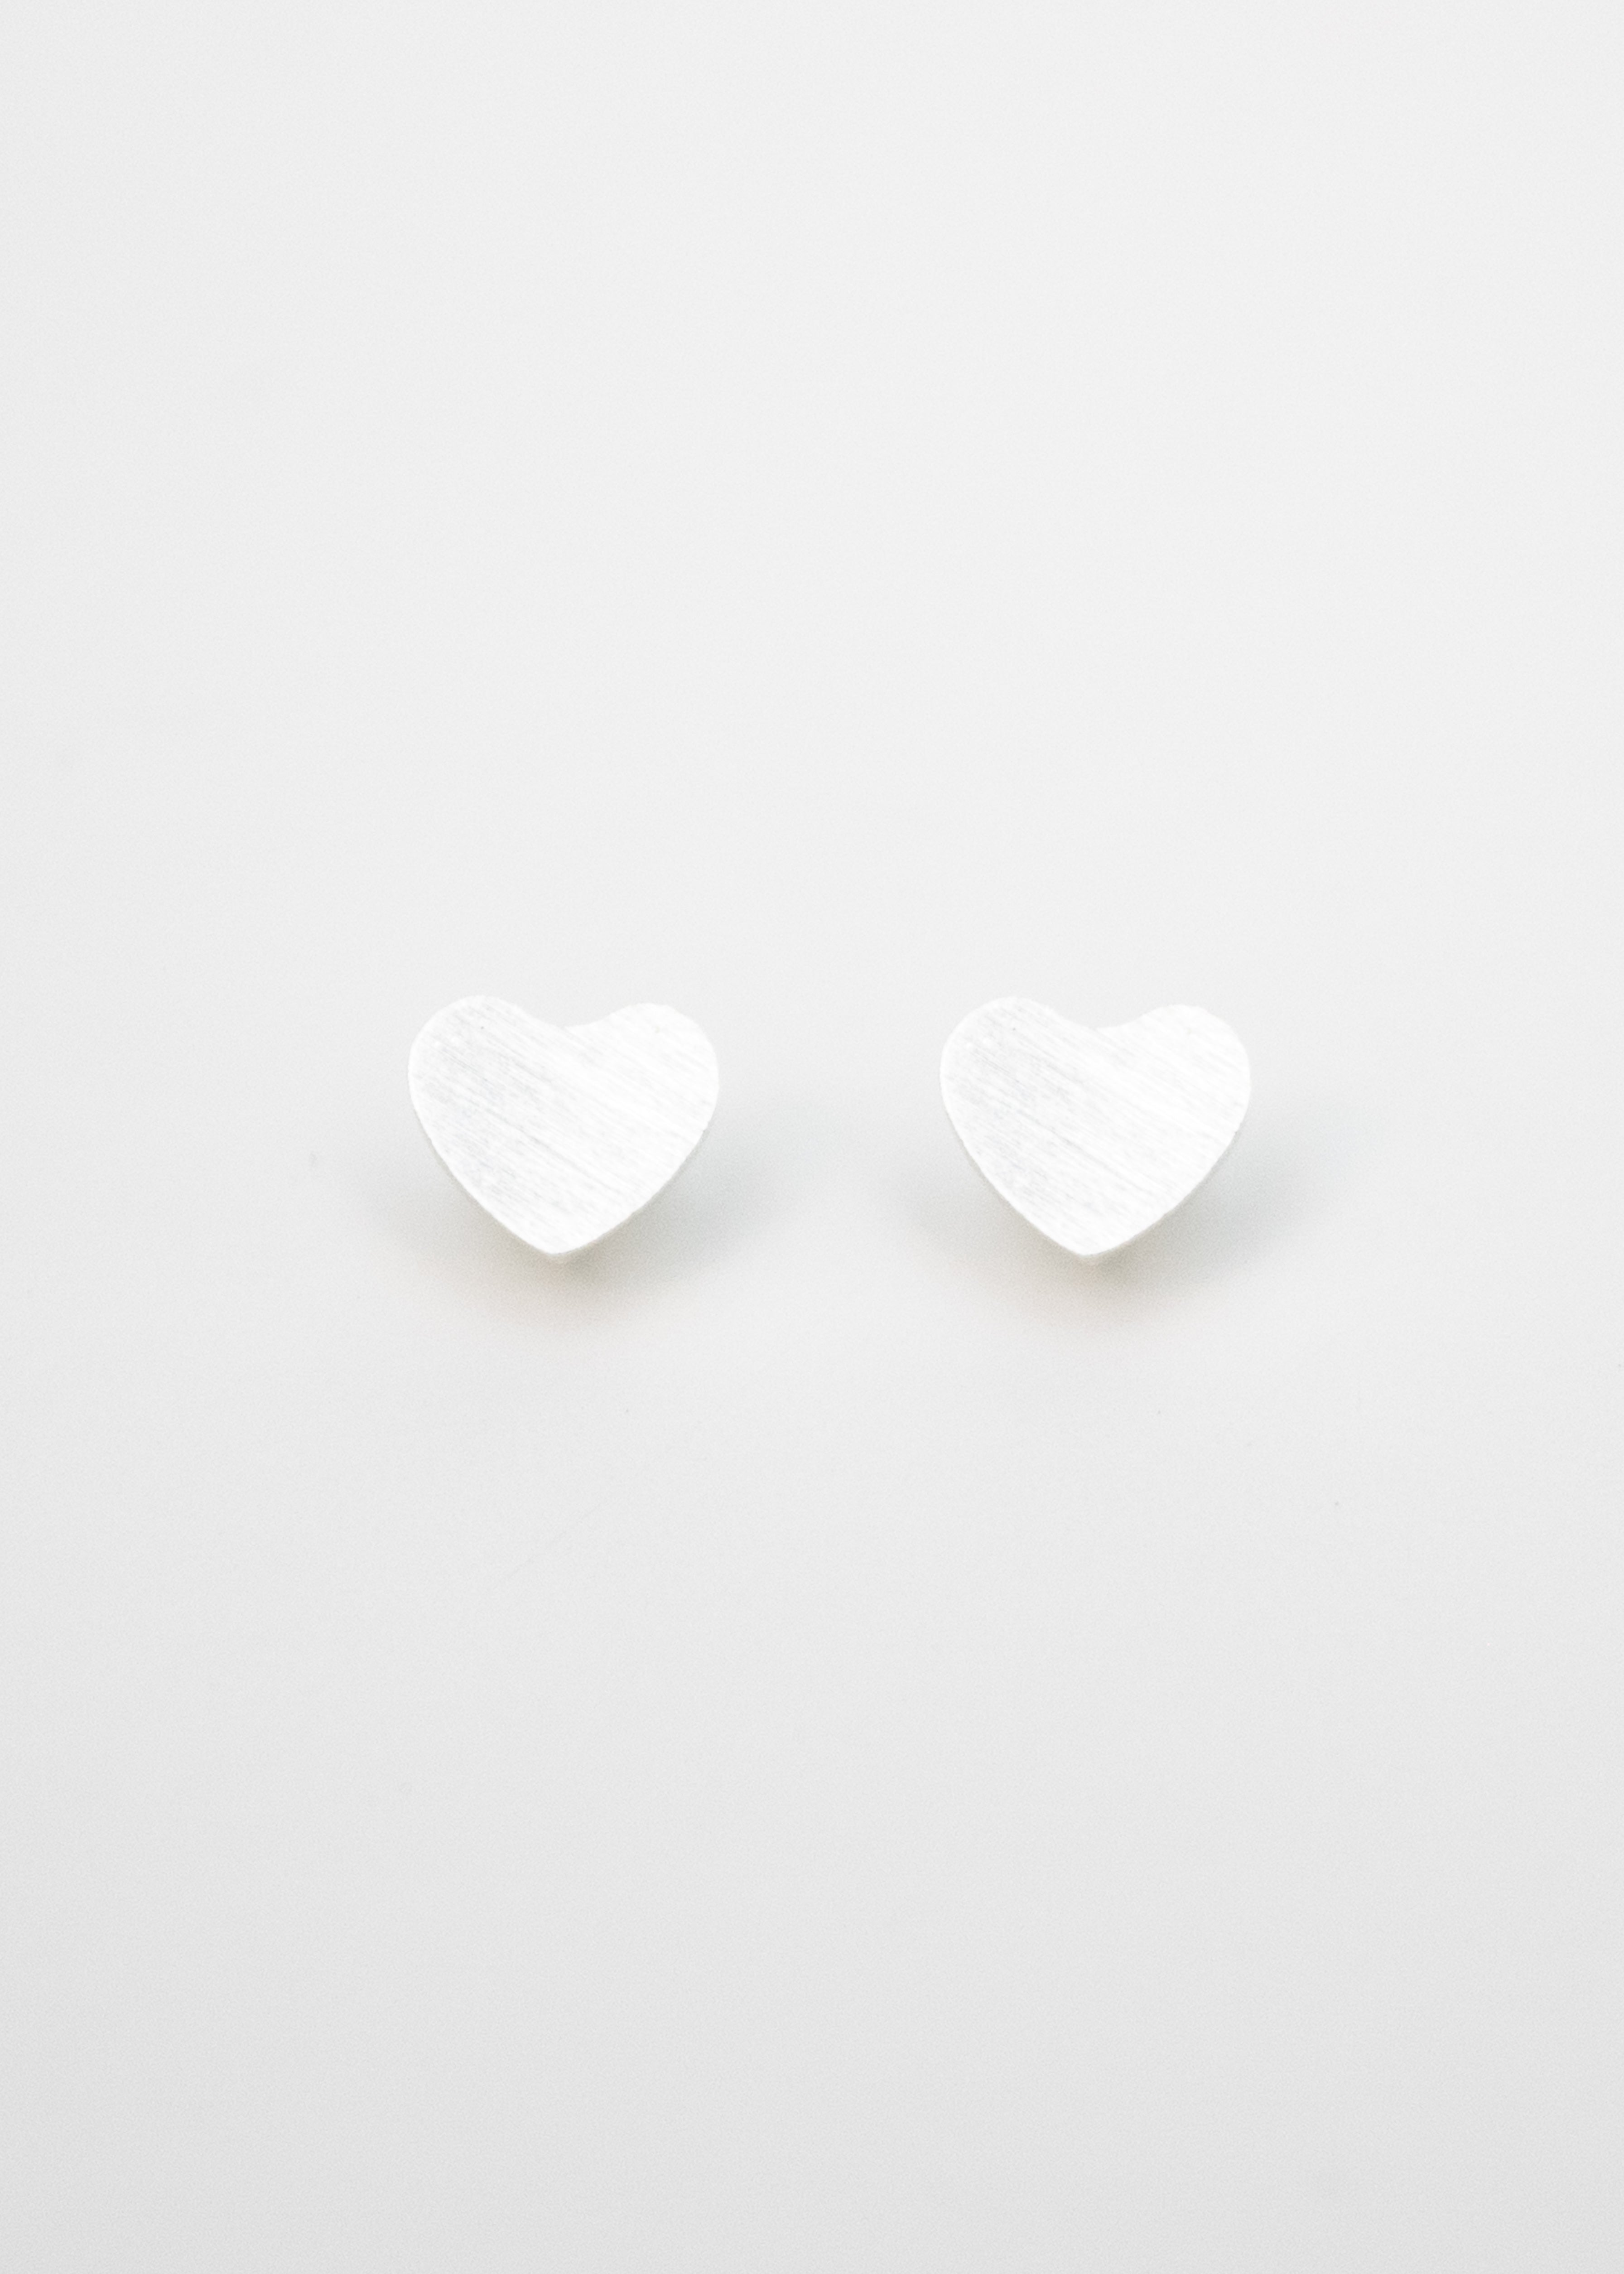 Beck & Boosh Amour Studs Silver Hearts Stainless Steel